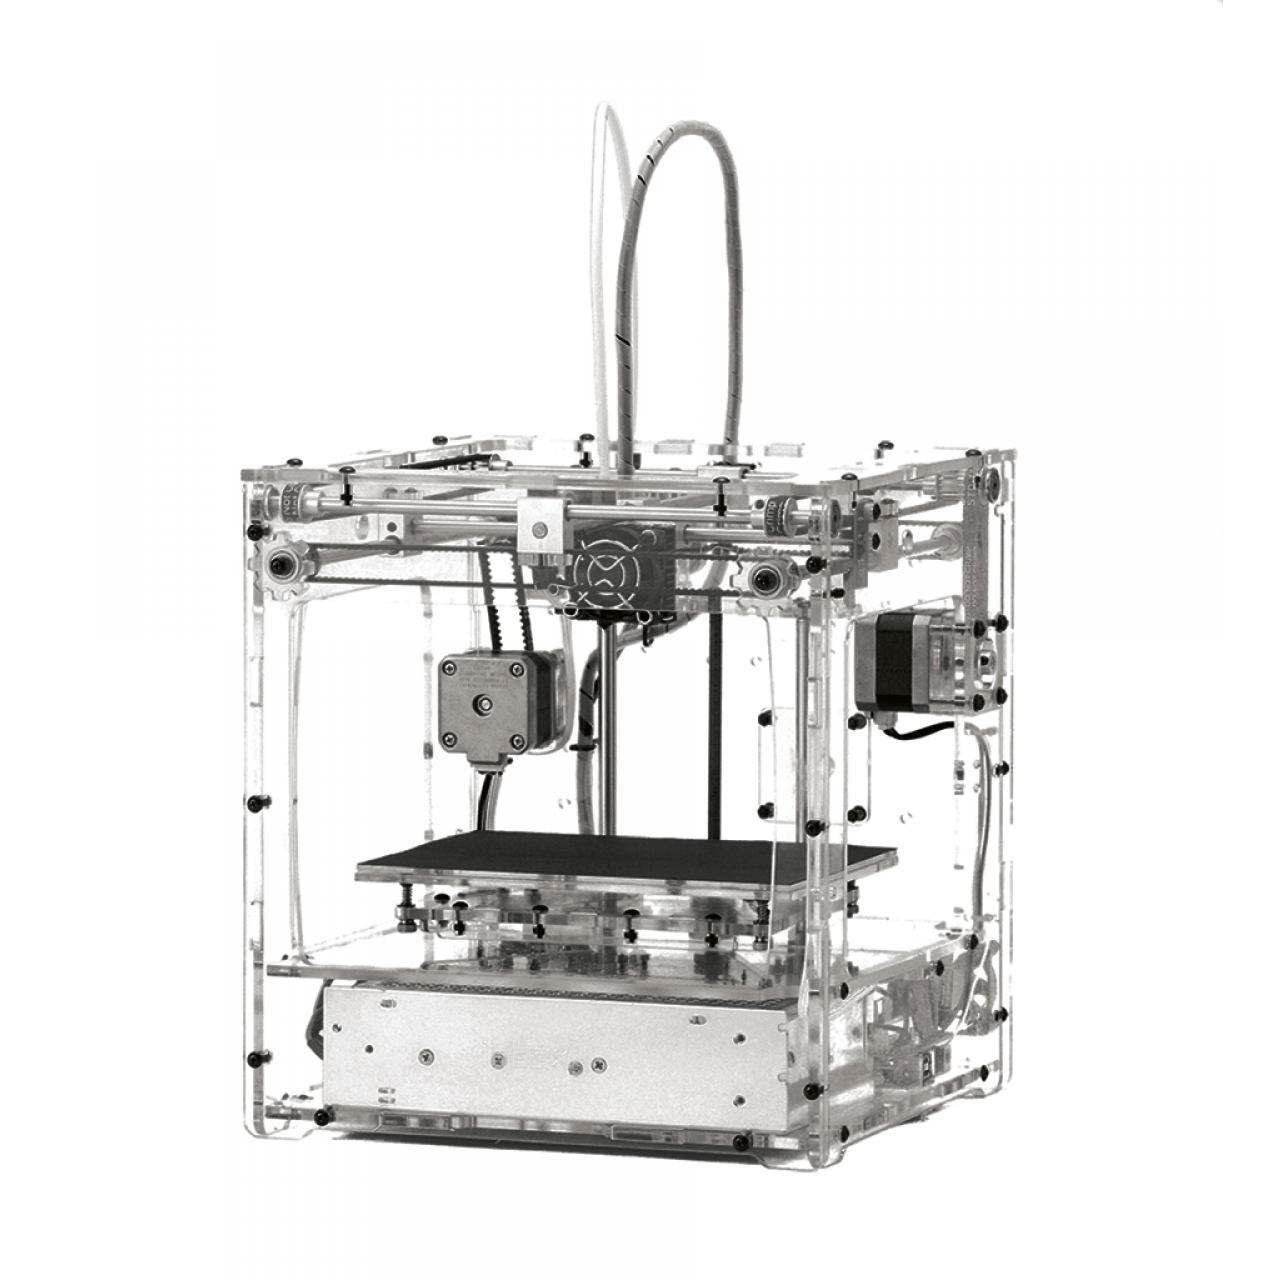 Build Your Own 3D Printer Idbox